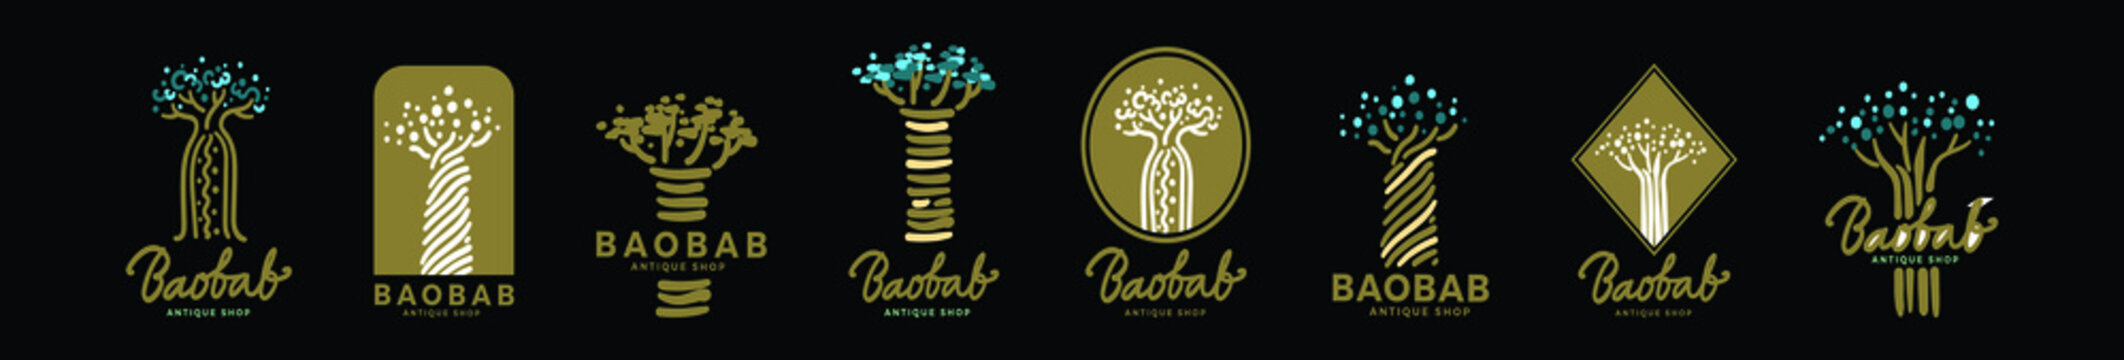 set of baobab or african tree cartoon icon design template with various models. vector illustration isolated on black background